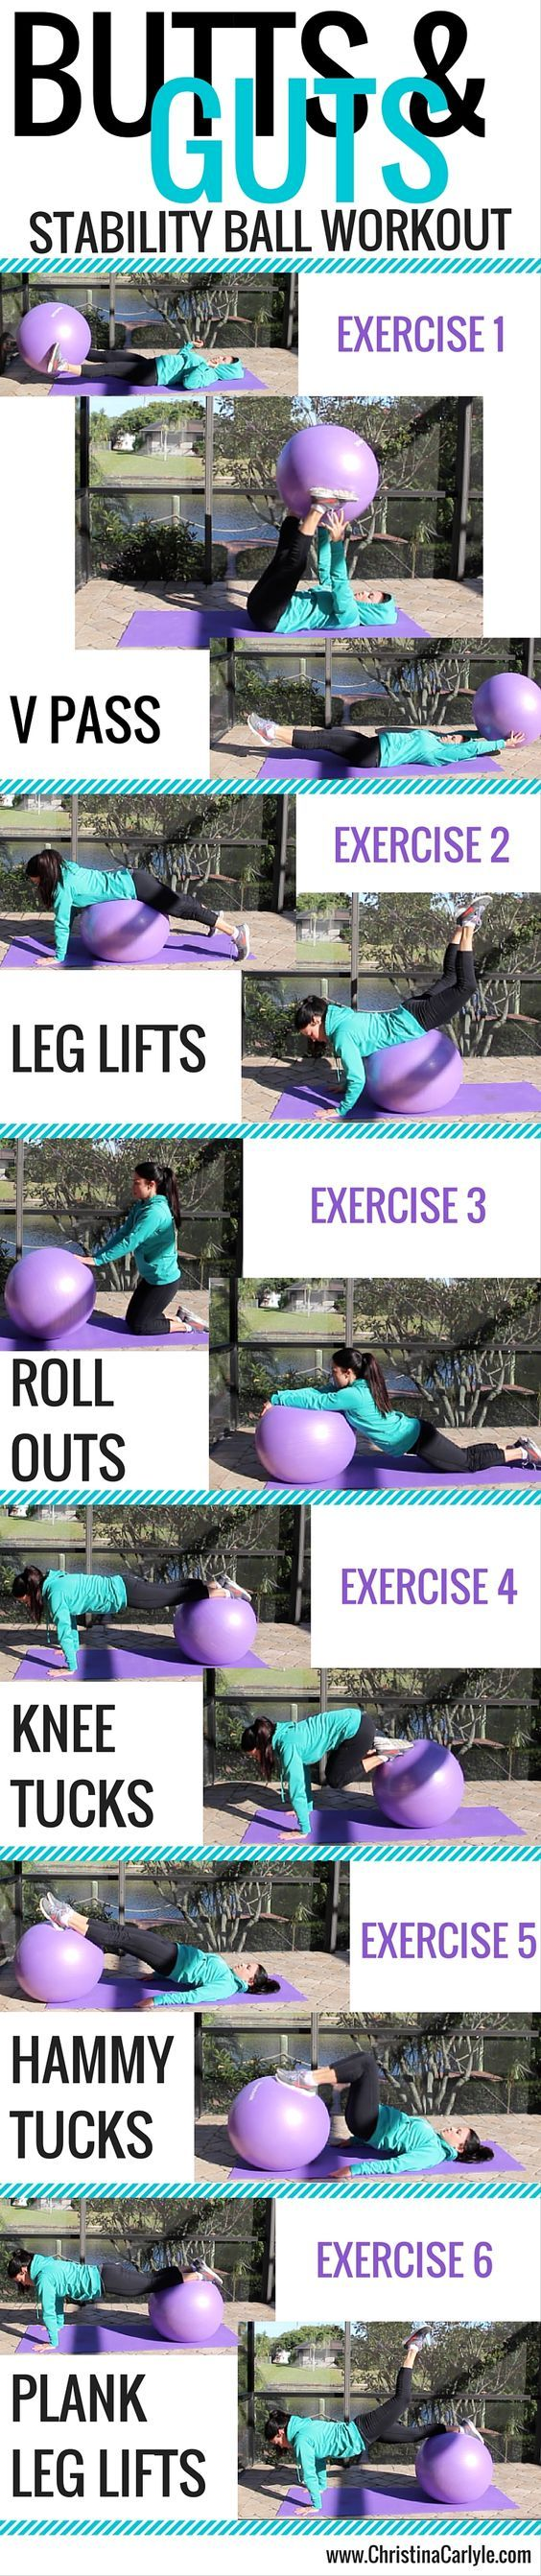 6 Best exercise ball workouts out there! Get an exercise ball today to start implementing these moves and tone your body quickly http://www.liveinfinitely.com/collections/all-products/products/anti-burst-exercise-ball